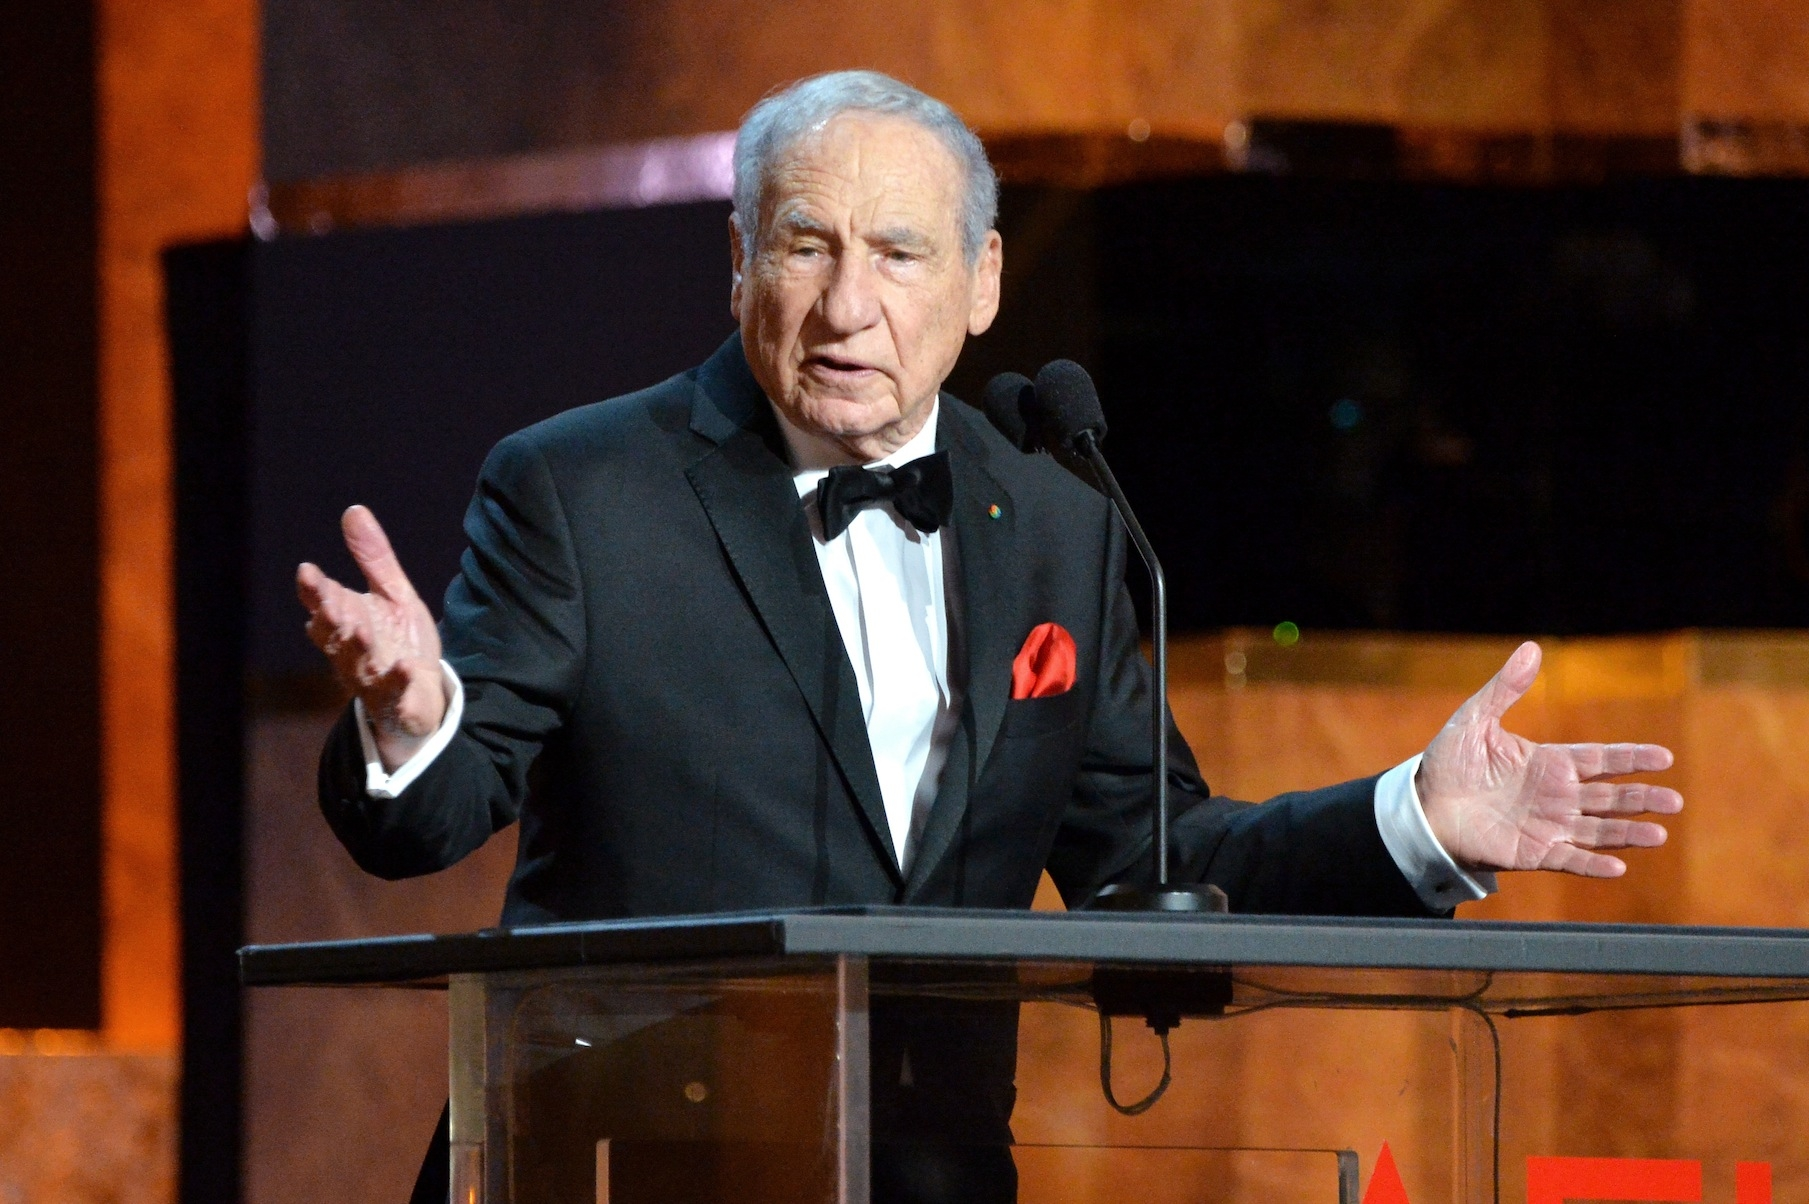 Director Mel Brooks speaks onstage at the 2014 AFI Life Achievement Award: A Tribute to Jane Fonda at the Dolby Theatre, June 5, 2014 in Hollywood, Calif. (Frazer Harrison/Getty Images for AFI)